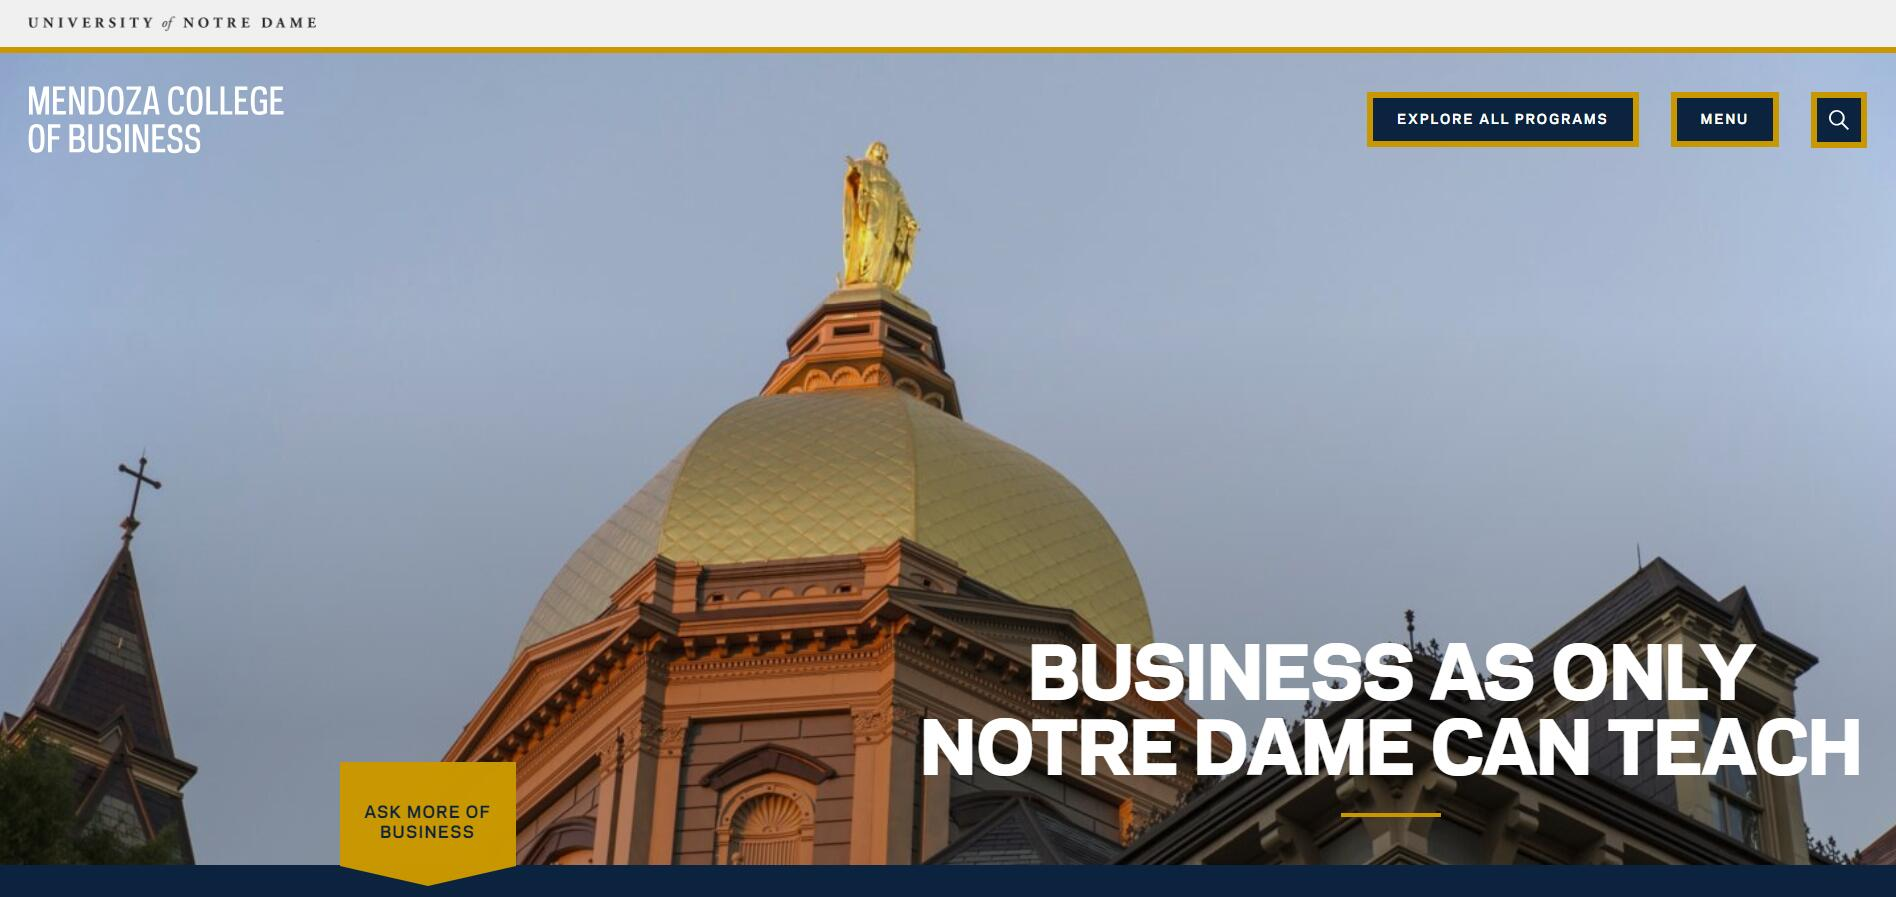 The Mendoza College of Business at University of Notre Dame